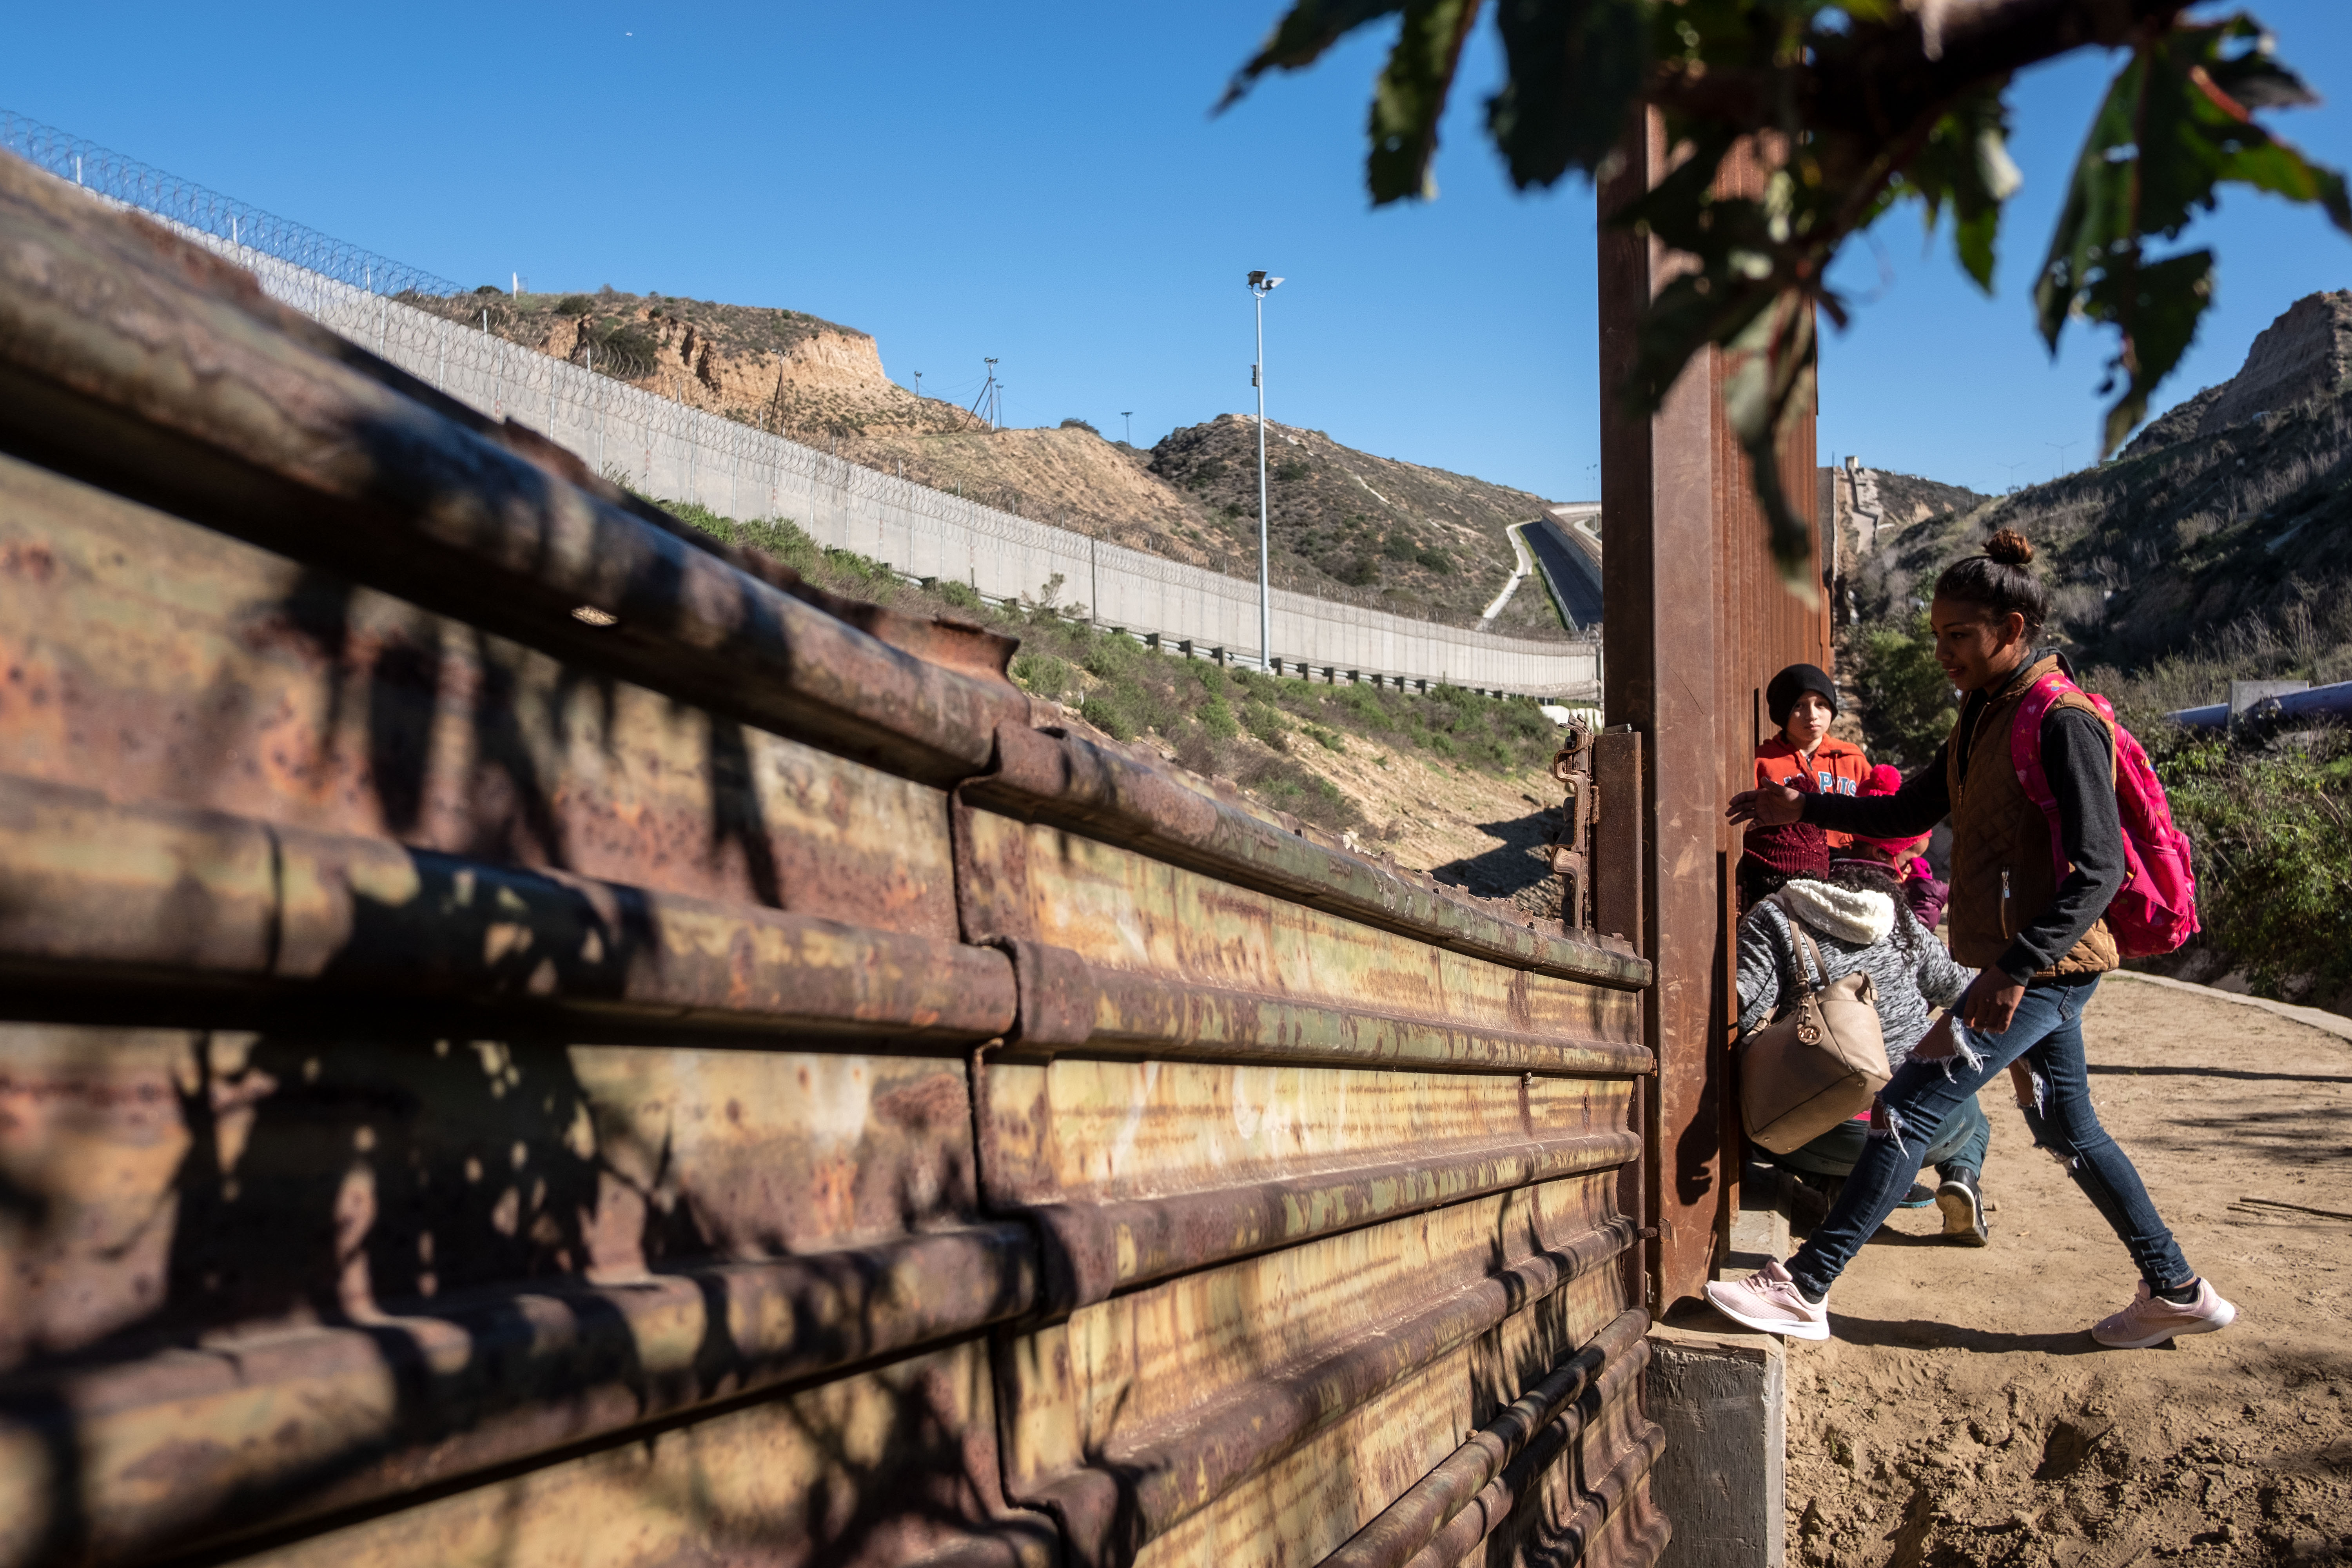 A 17-year-old Honduran migrant starts climbing the US-Mexico border fence